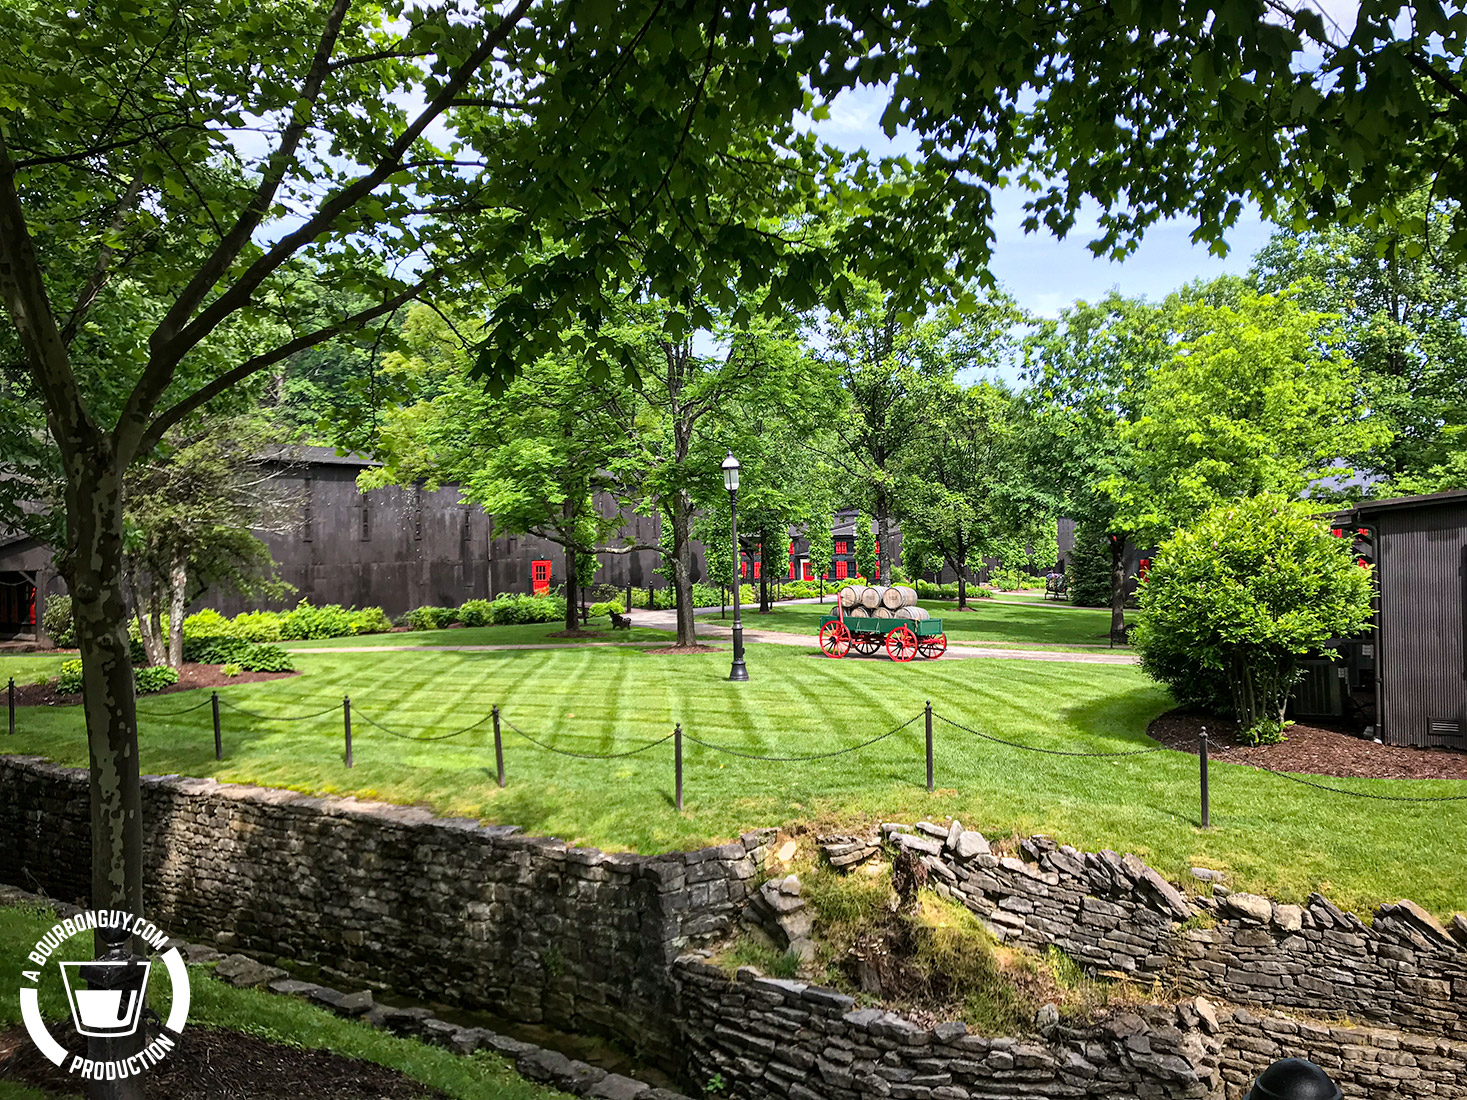 IMAGE: The green grass and black buildings of the Maker's Mark Campus.